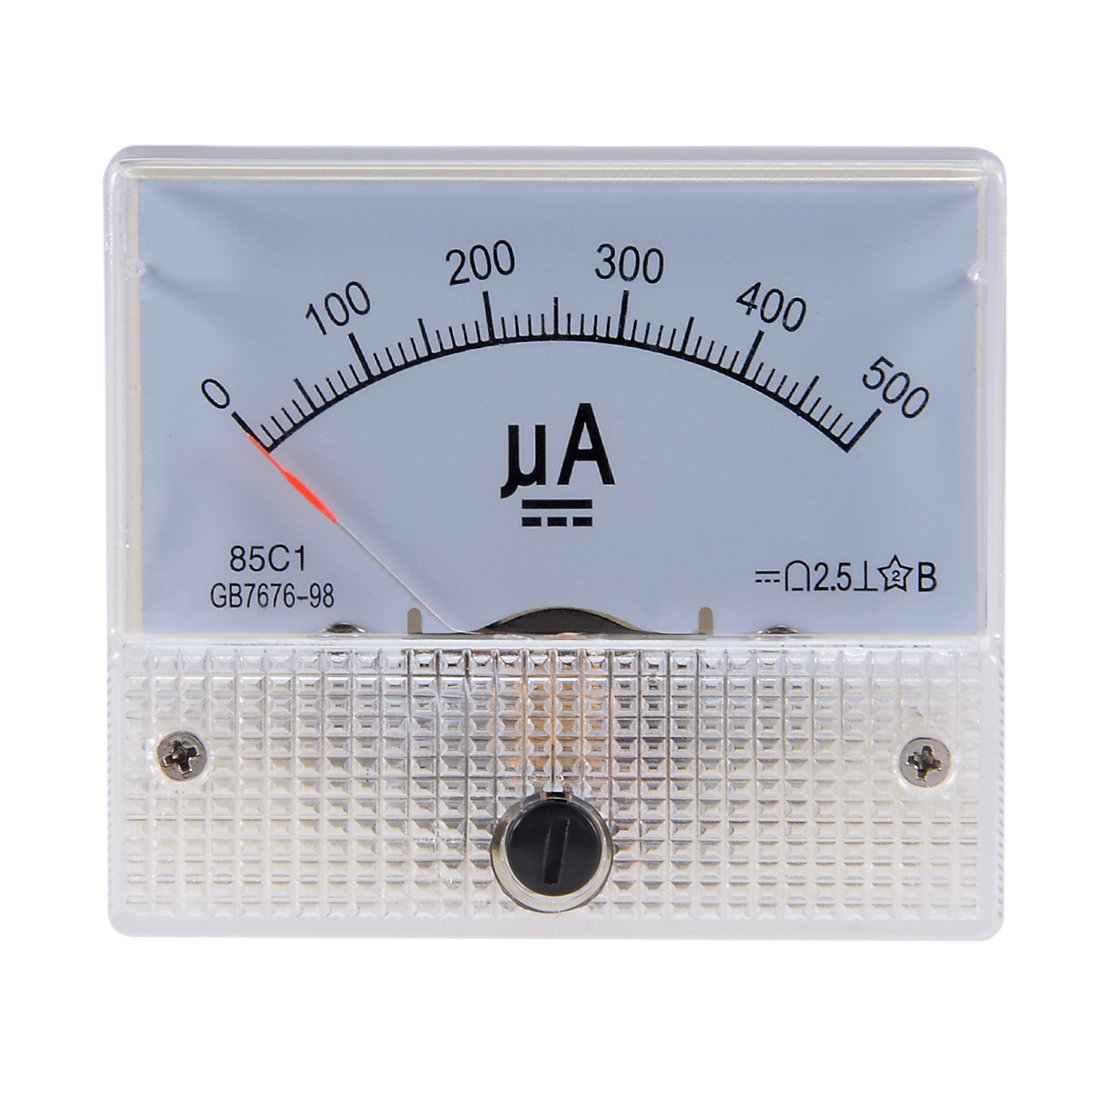 uxcell 65C5-A Analog Current Panel Meter DC 30A Ammeter for Circuit Testing Ampere Tester Gauge 1 PCS a18042000ux0425